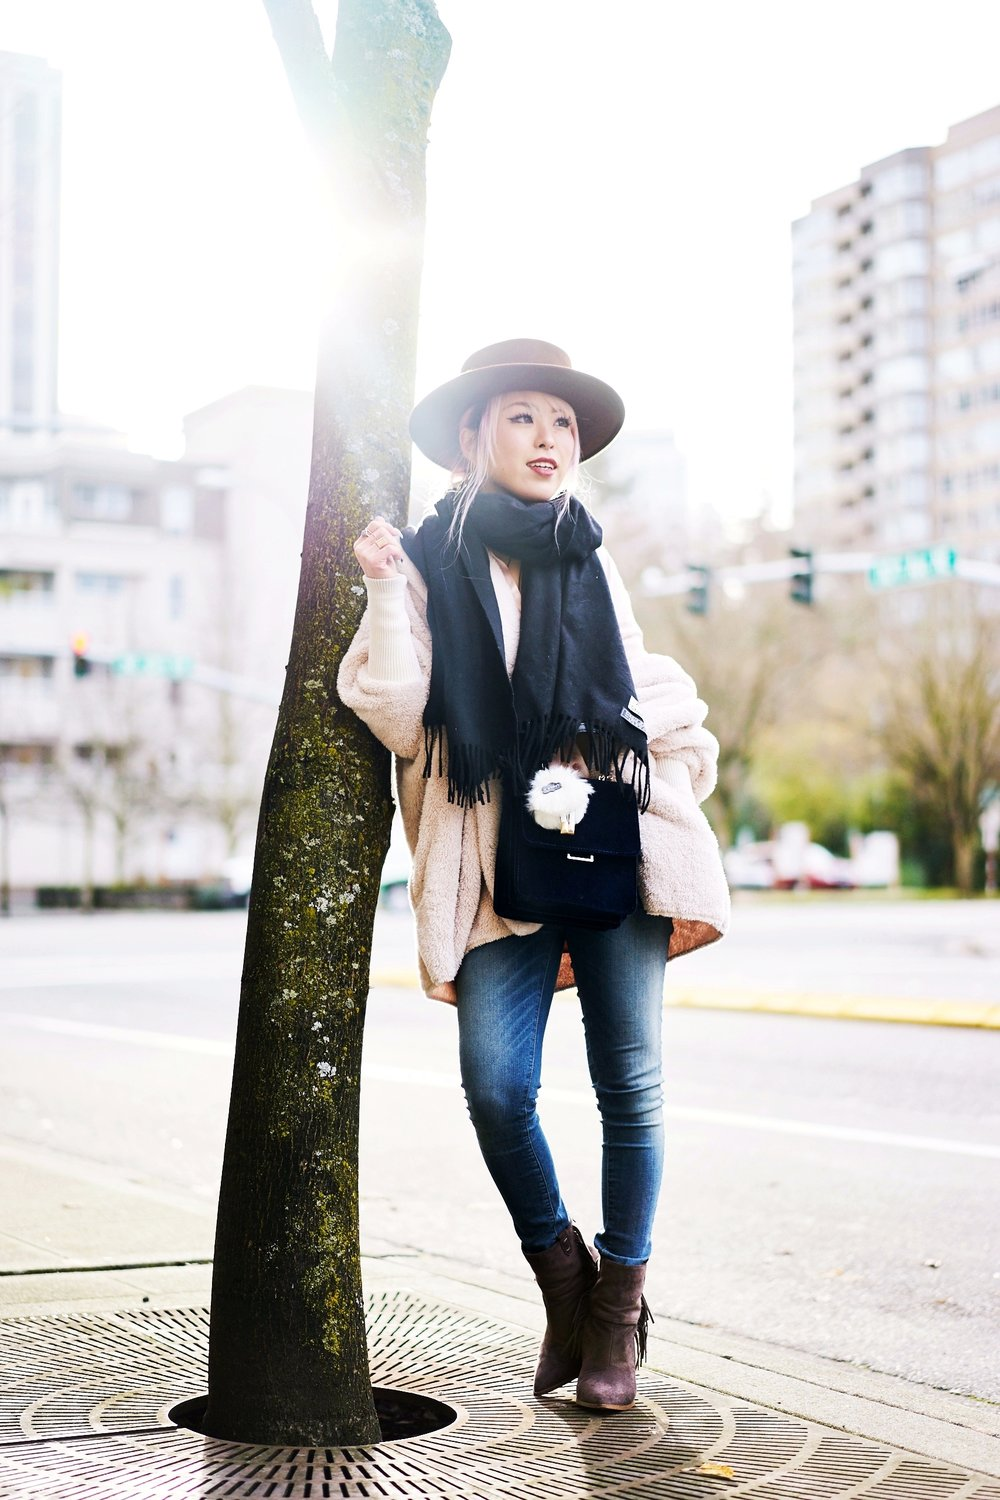 Zara blush satin shirt-Forever 21 Lace Bralette-No Weekends wrap chocker-She In Apricot Hooded Long Sleeve Loose Cardigan-Acne Studios Canada wool Scarf black-zara velvet crossbody bag-hudson jeans skinny jeans-lack of color the coco boater-Justfab KAIYA booties-Aika's love closet-Seattle fashion style blogger-japanese-pink hair 10